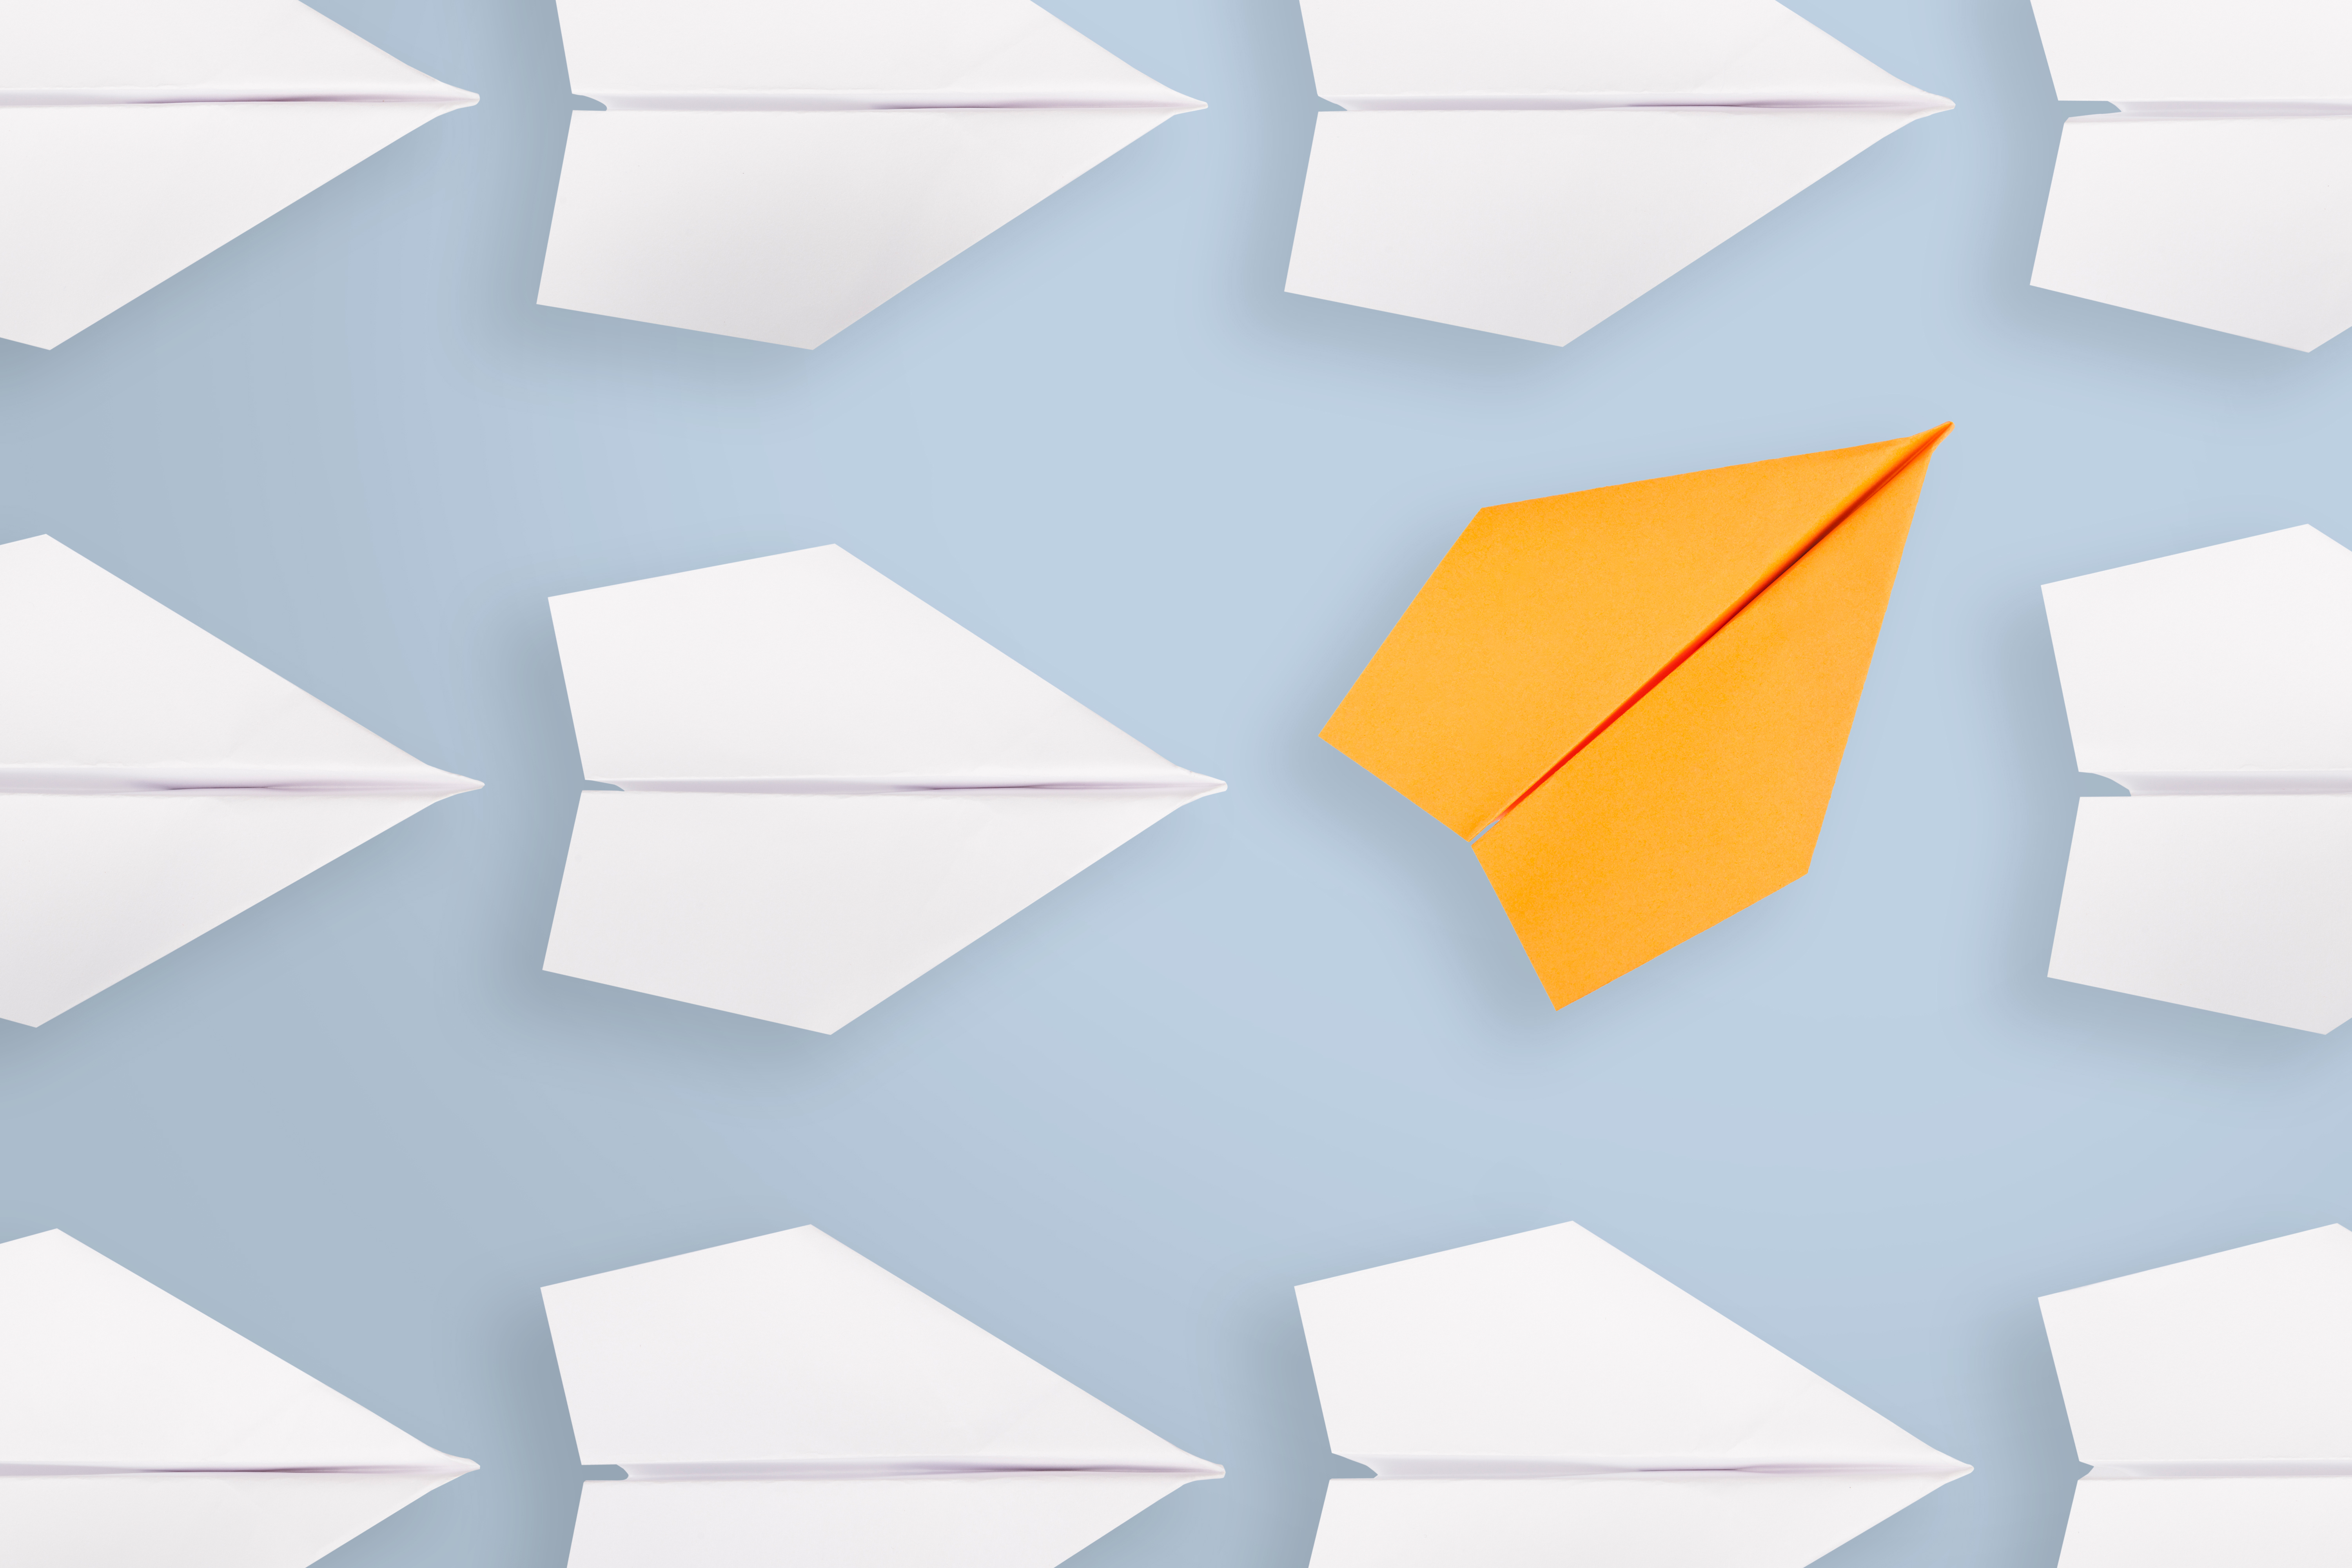 Change concepts with orange paper airplane leading among white